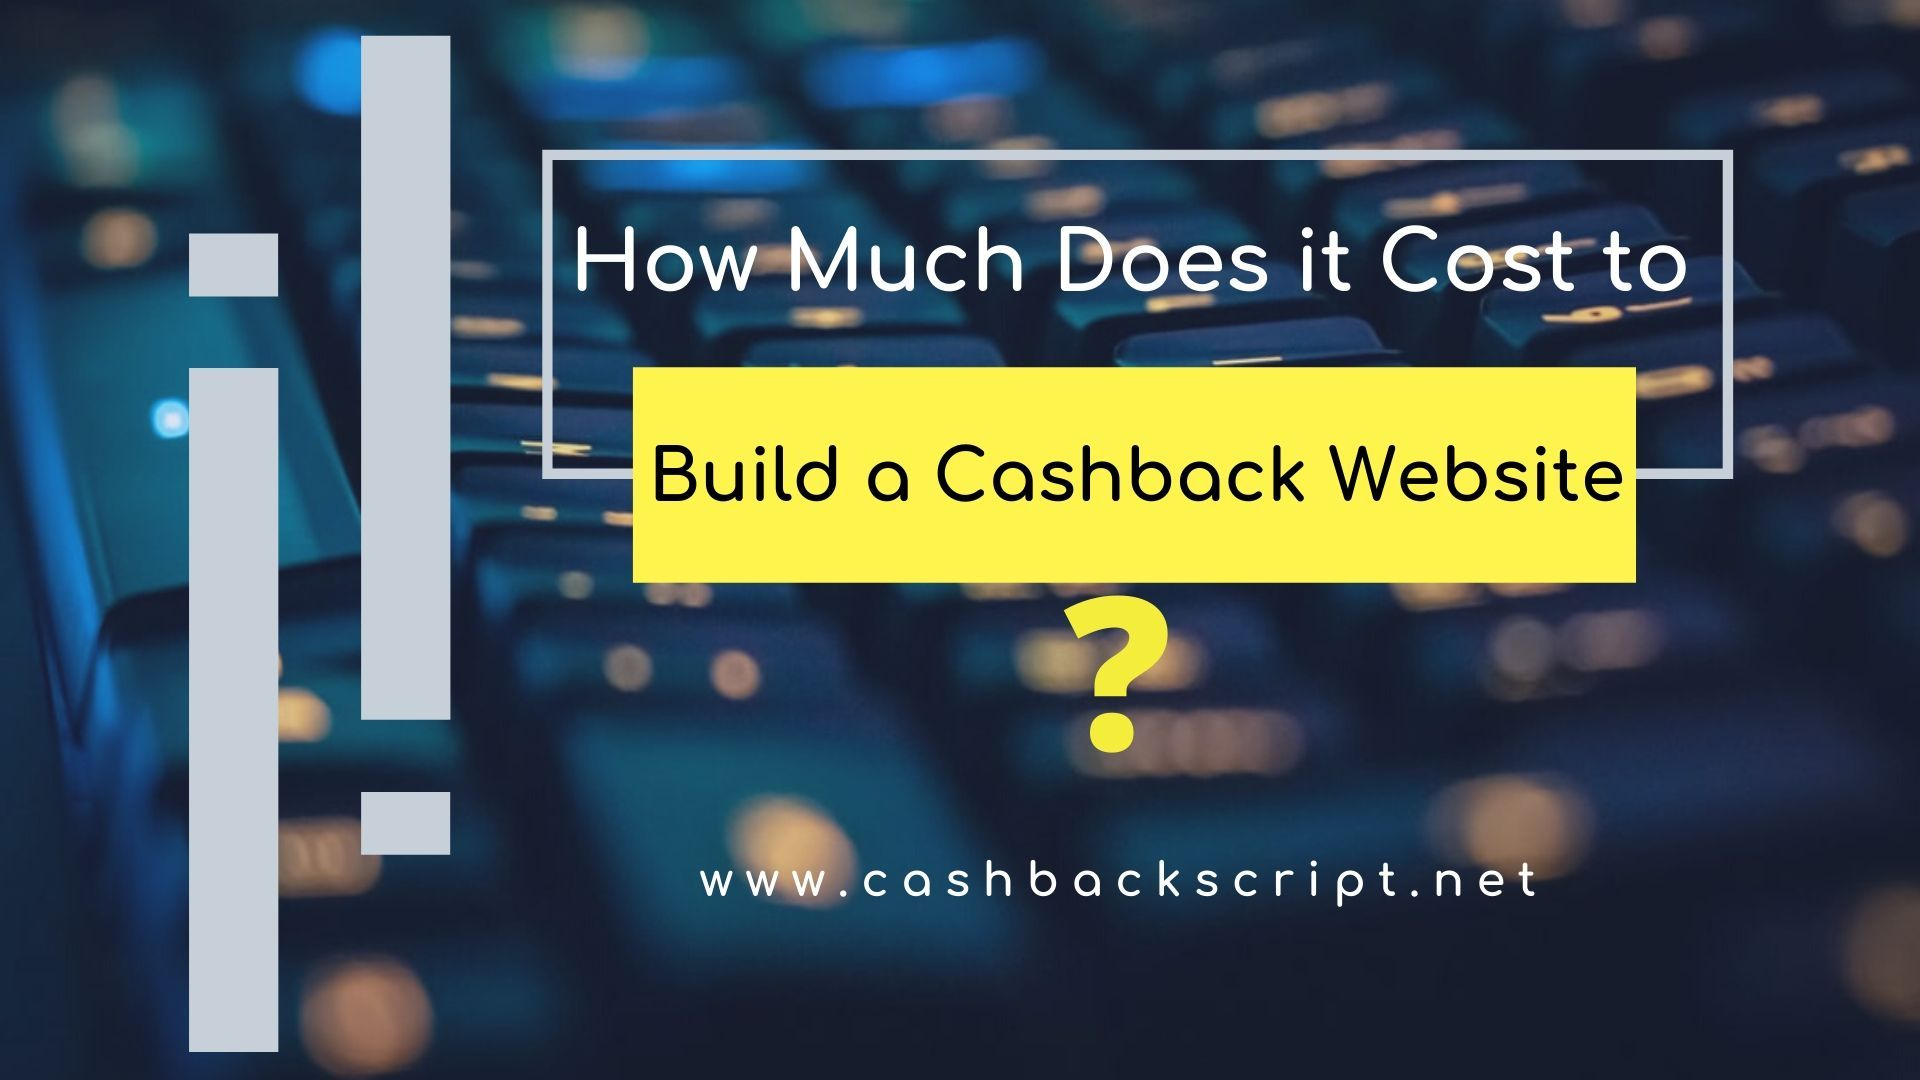 How Much Does it Cost to Build a Cashback Website? in 2020